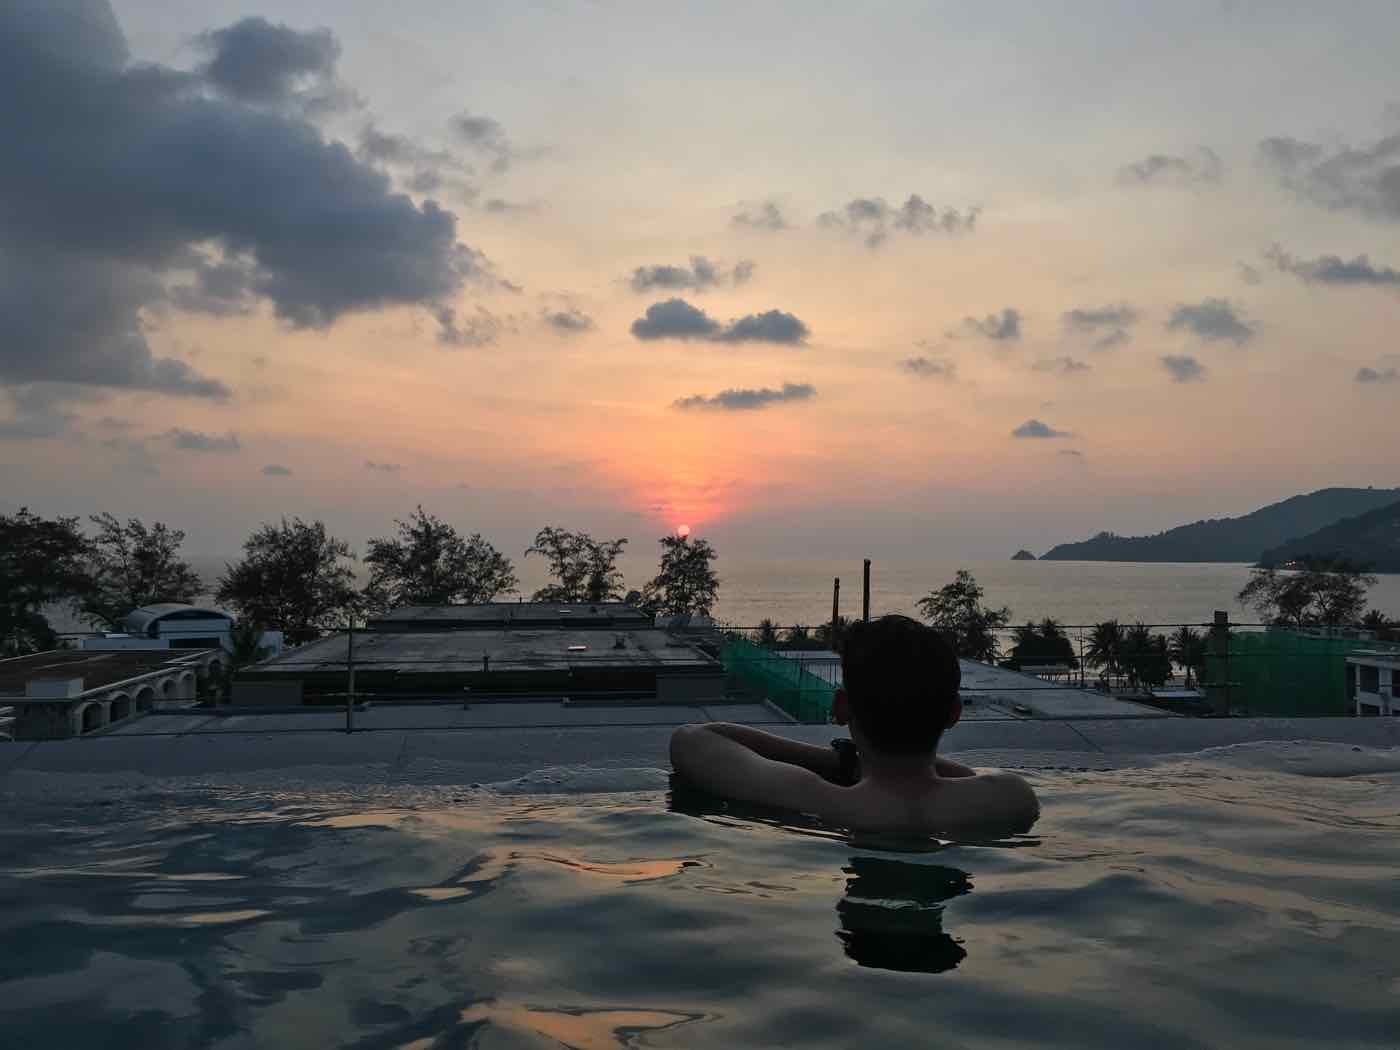 Thailand Island hopping phuket sunset pool